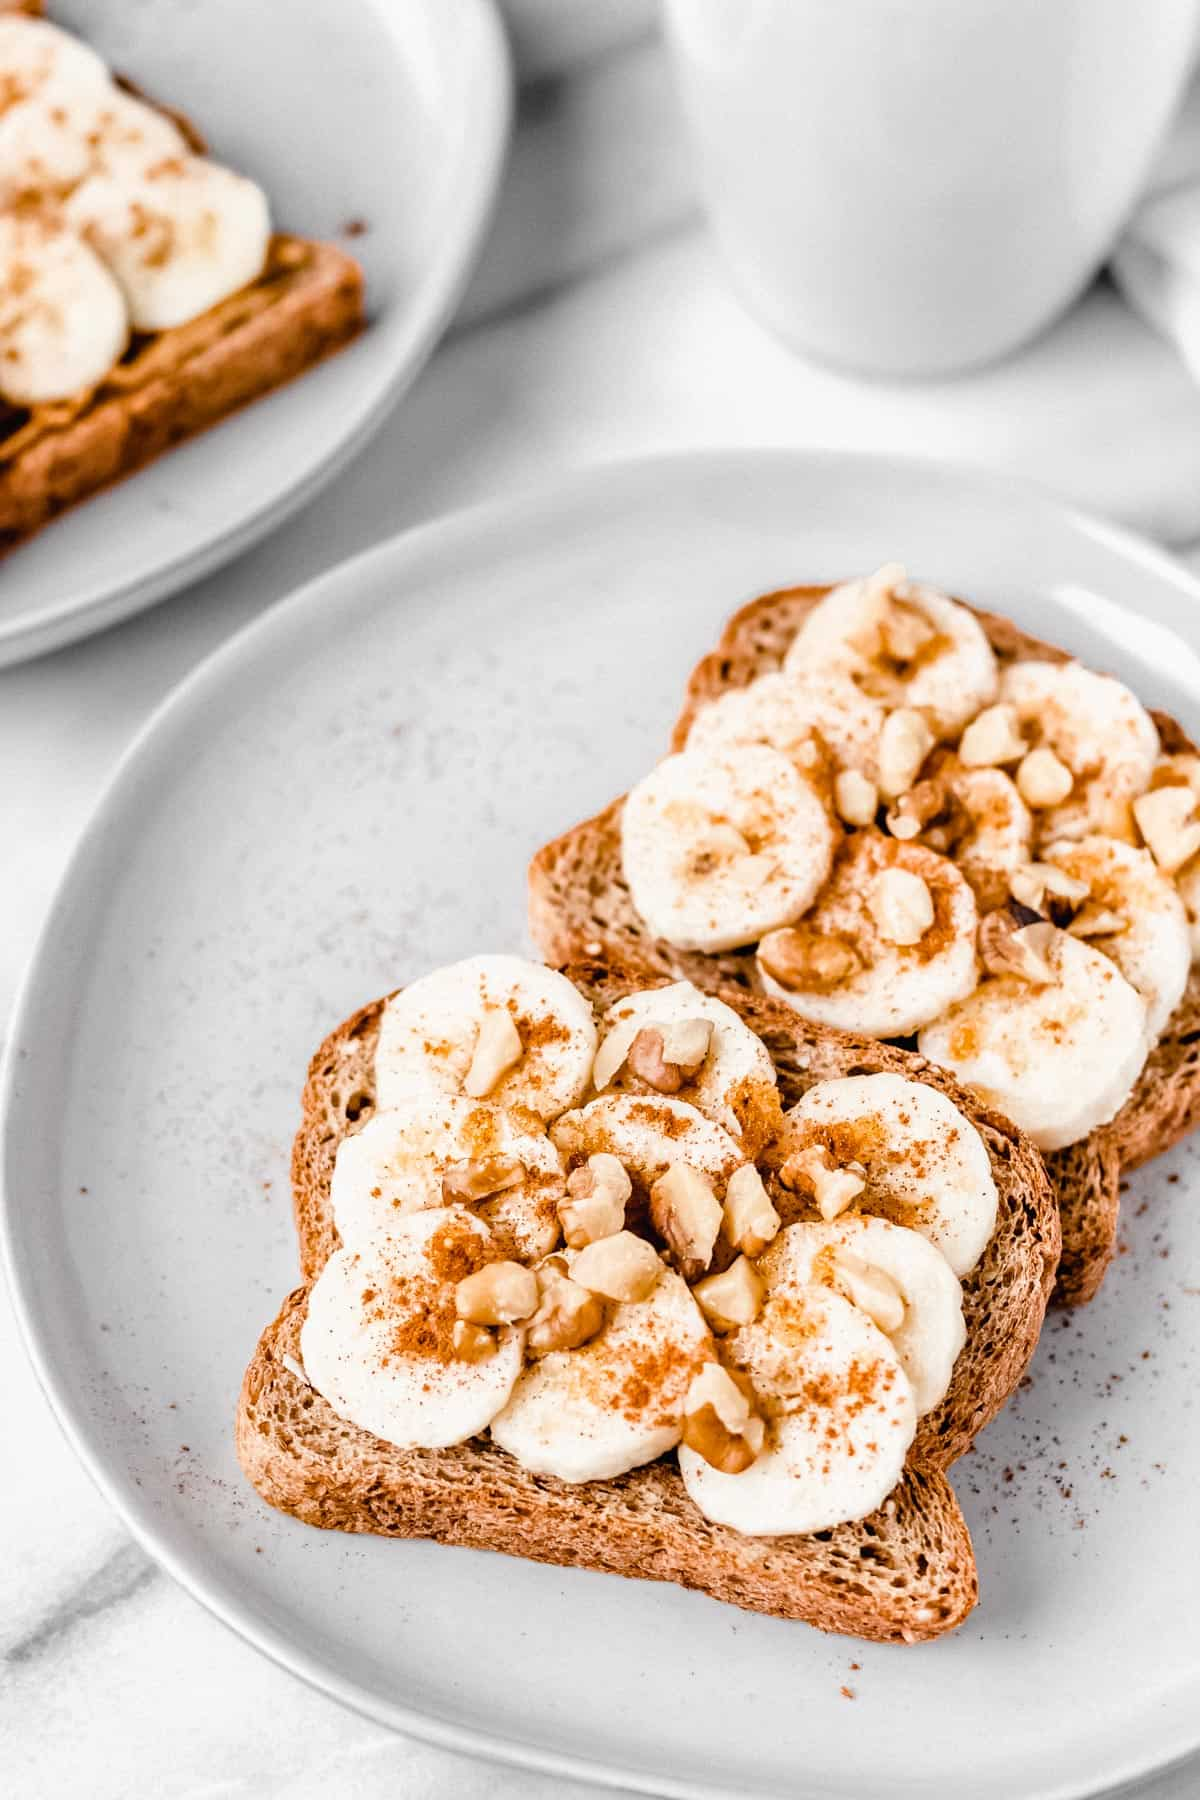 2 slices of Banana Nut Bread Toast on a white plate with a second plate and white mug in the background